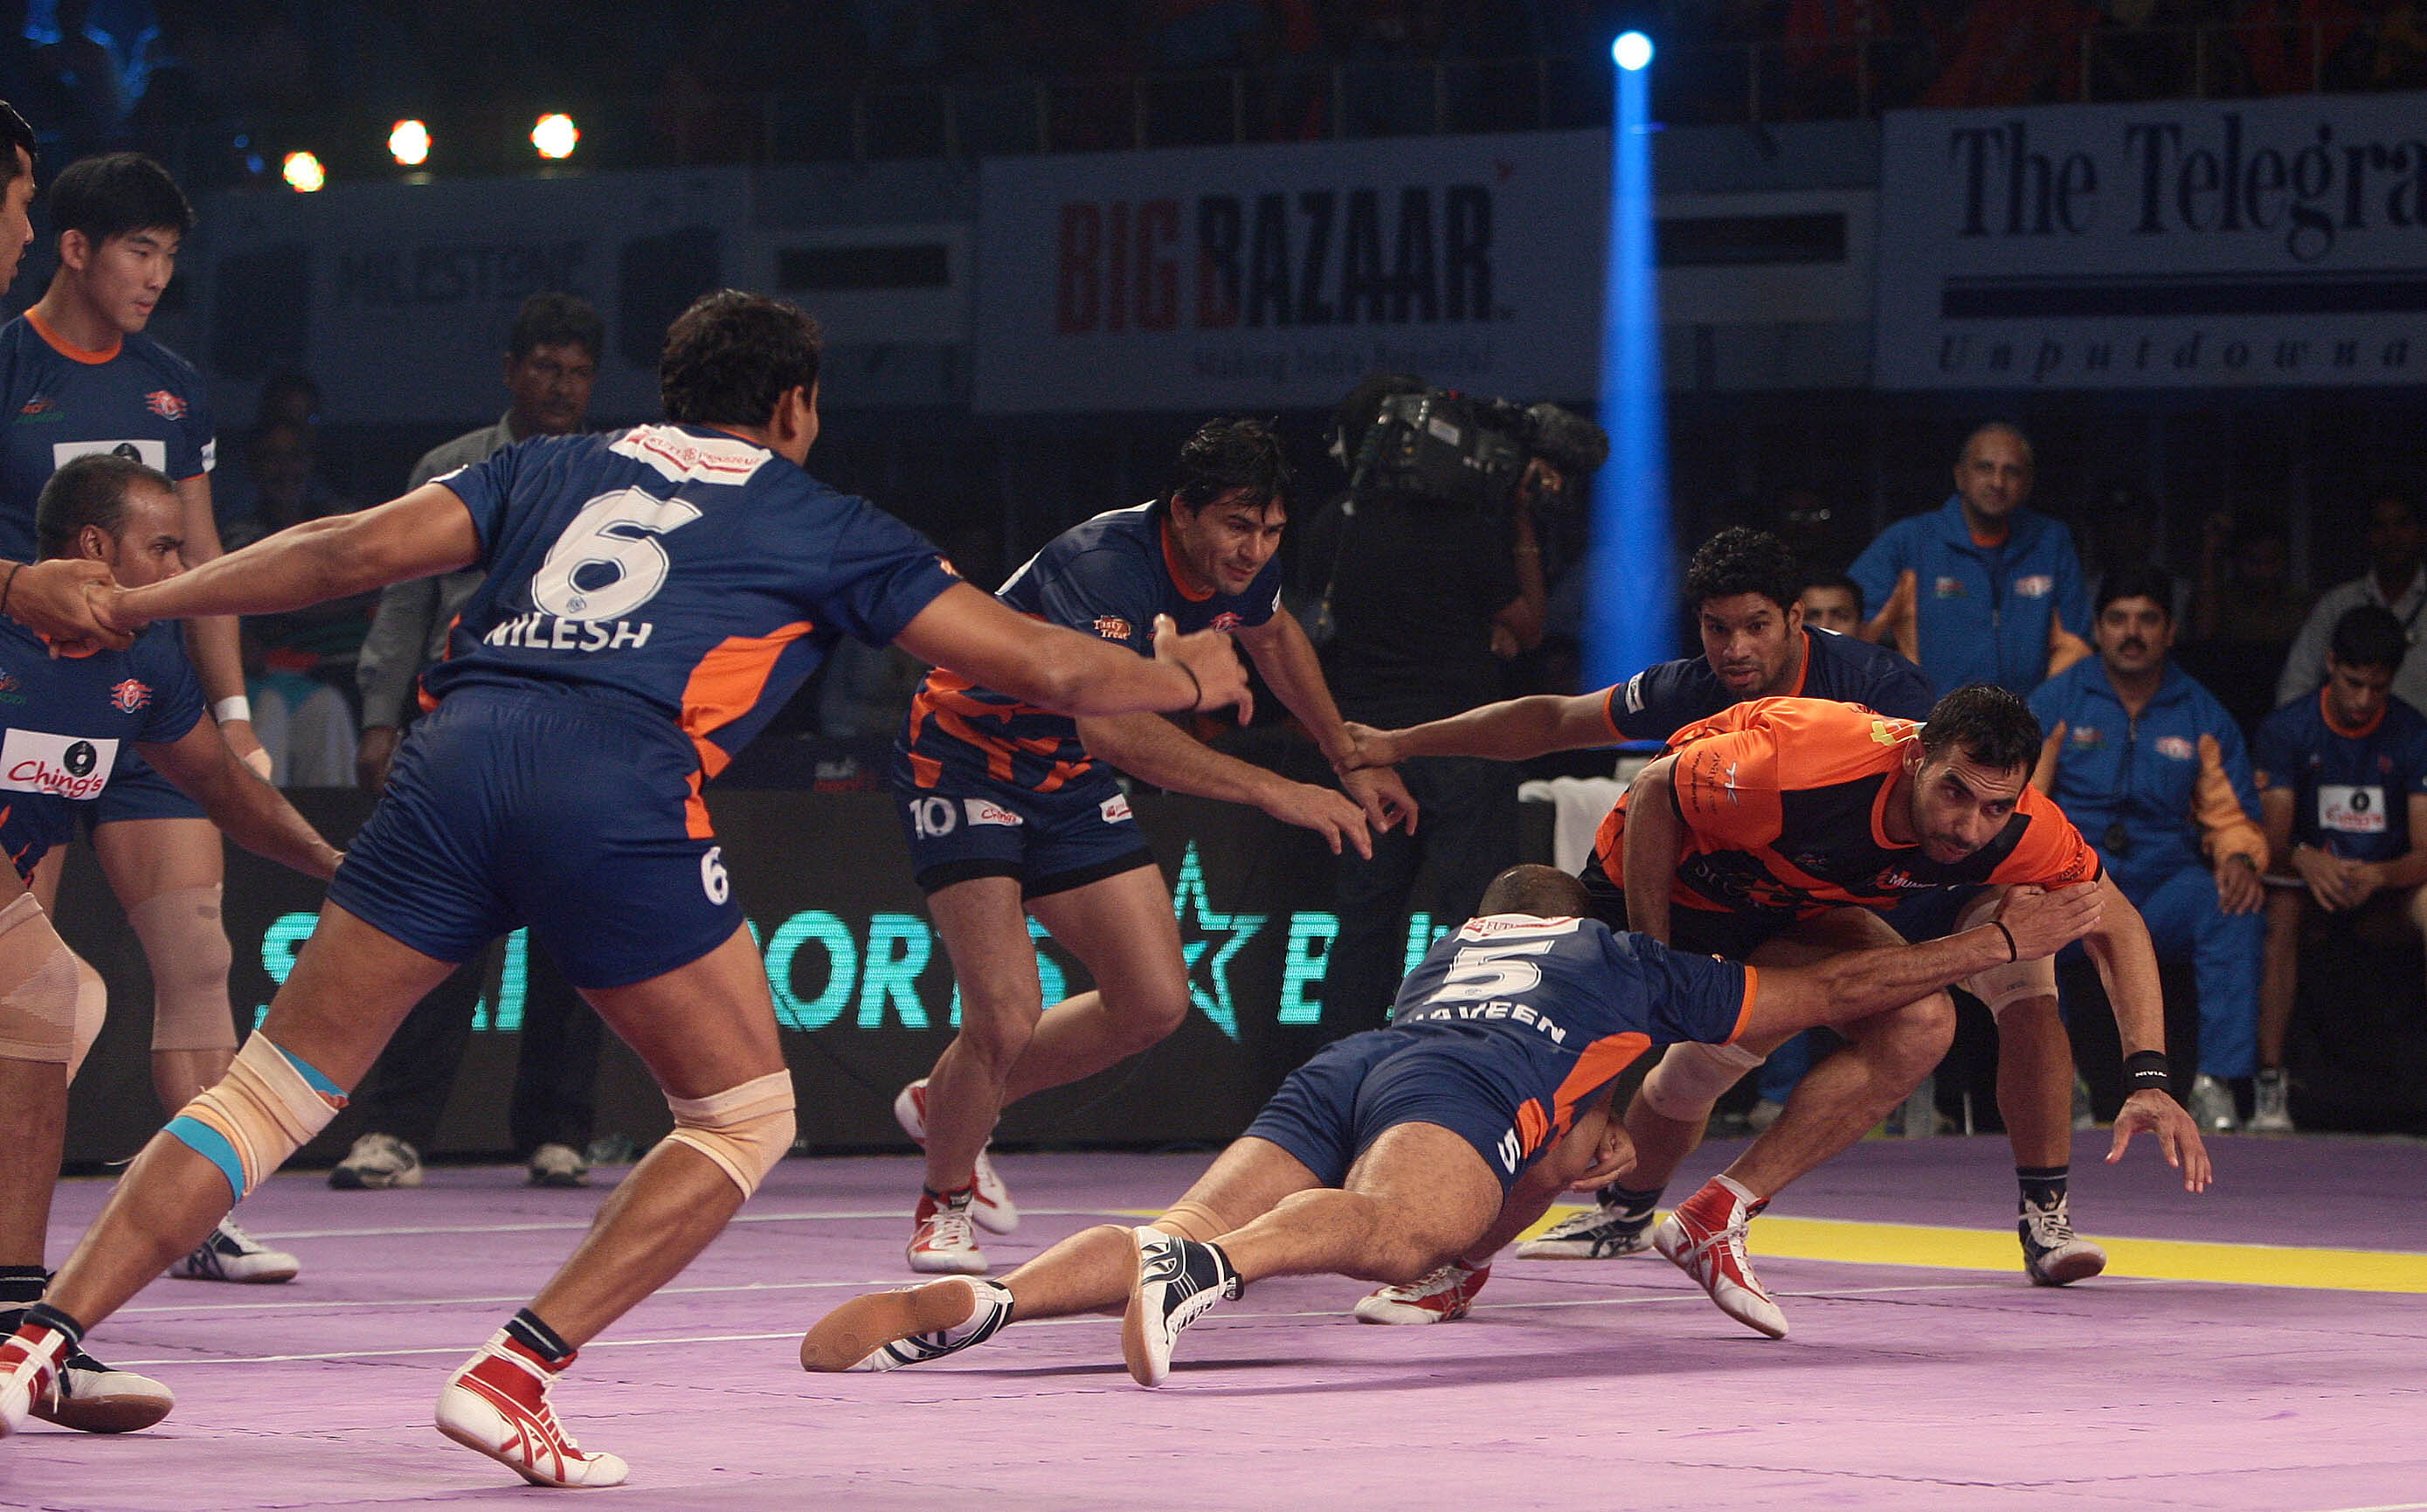 Kabaddi is the 4th most watched sport in India